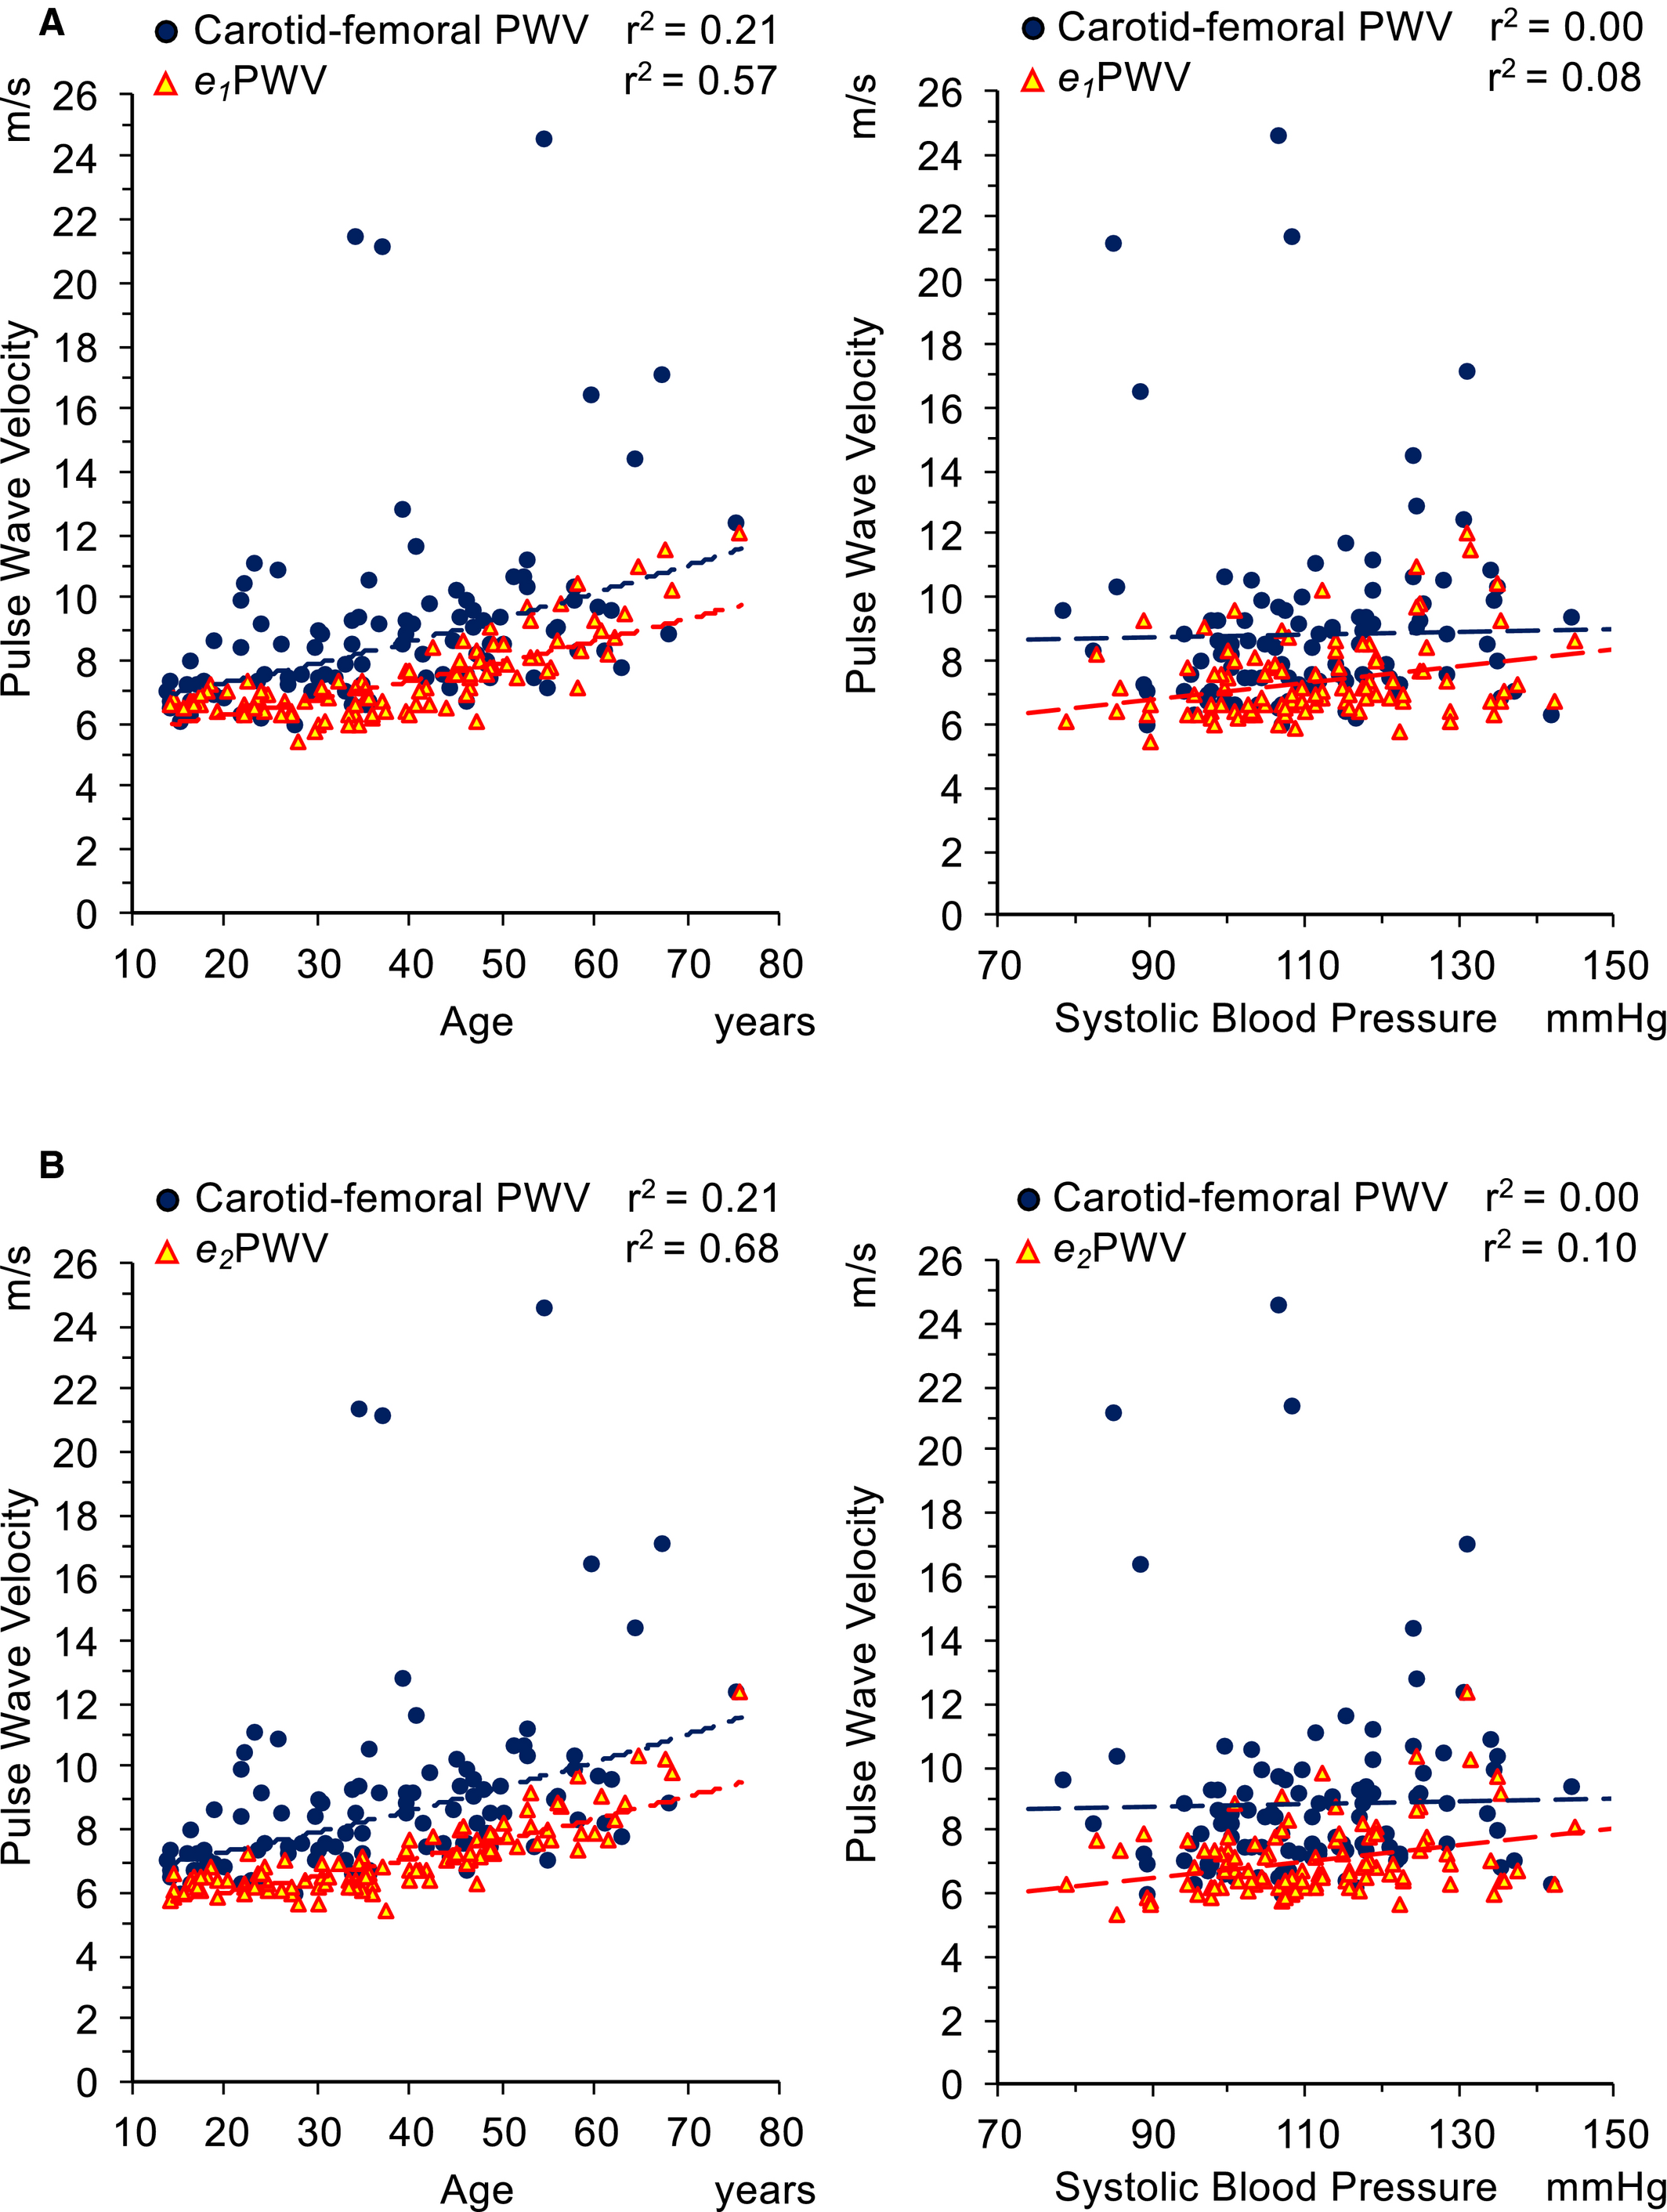 Unreliable Estimation of Aortic Pulse Wave Velocity Provided